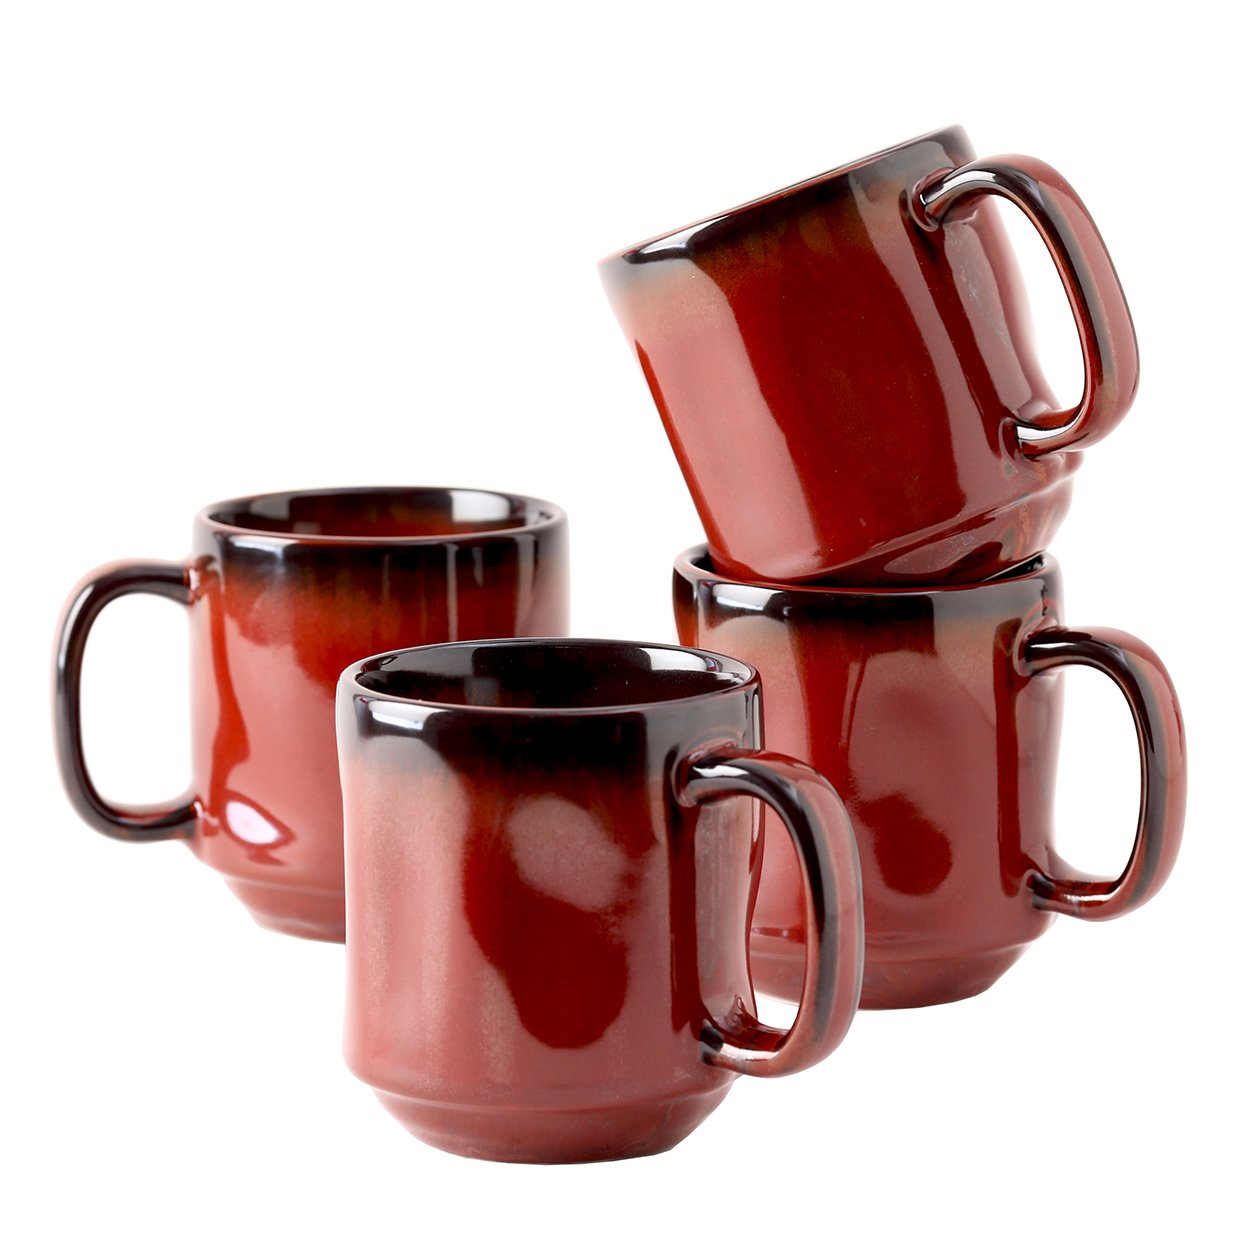 Tuxton Home Artisan Red Rock Mug 12 Oz. Reactive Glaze - Set of 4; Heavy Duty; Chip Resistant; Lead and Cadmium Free; Freezer to Oven Safe up to 500F